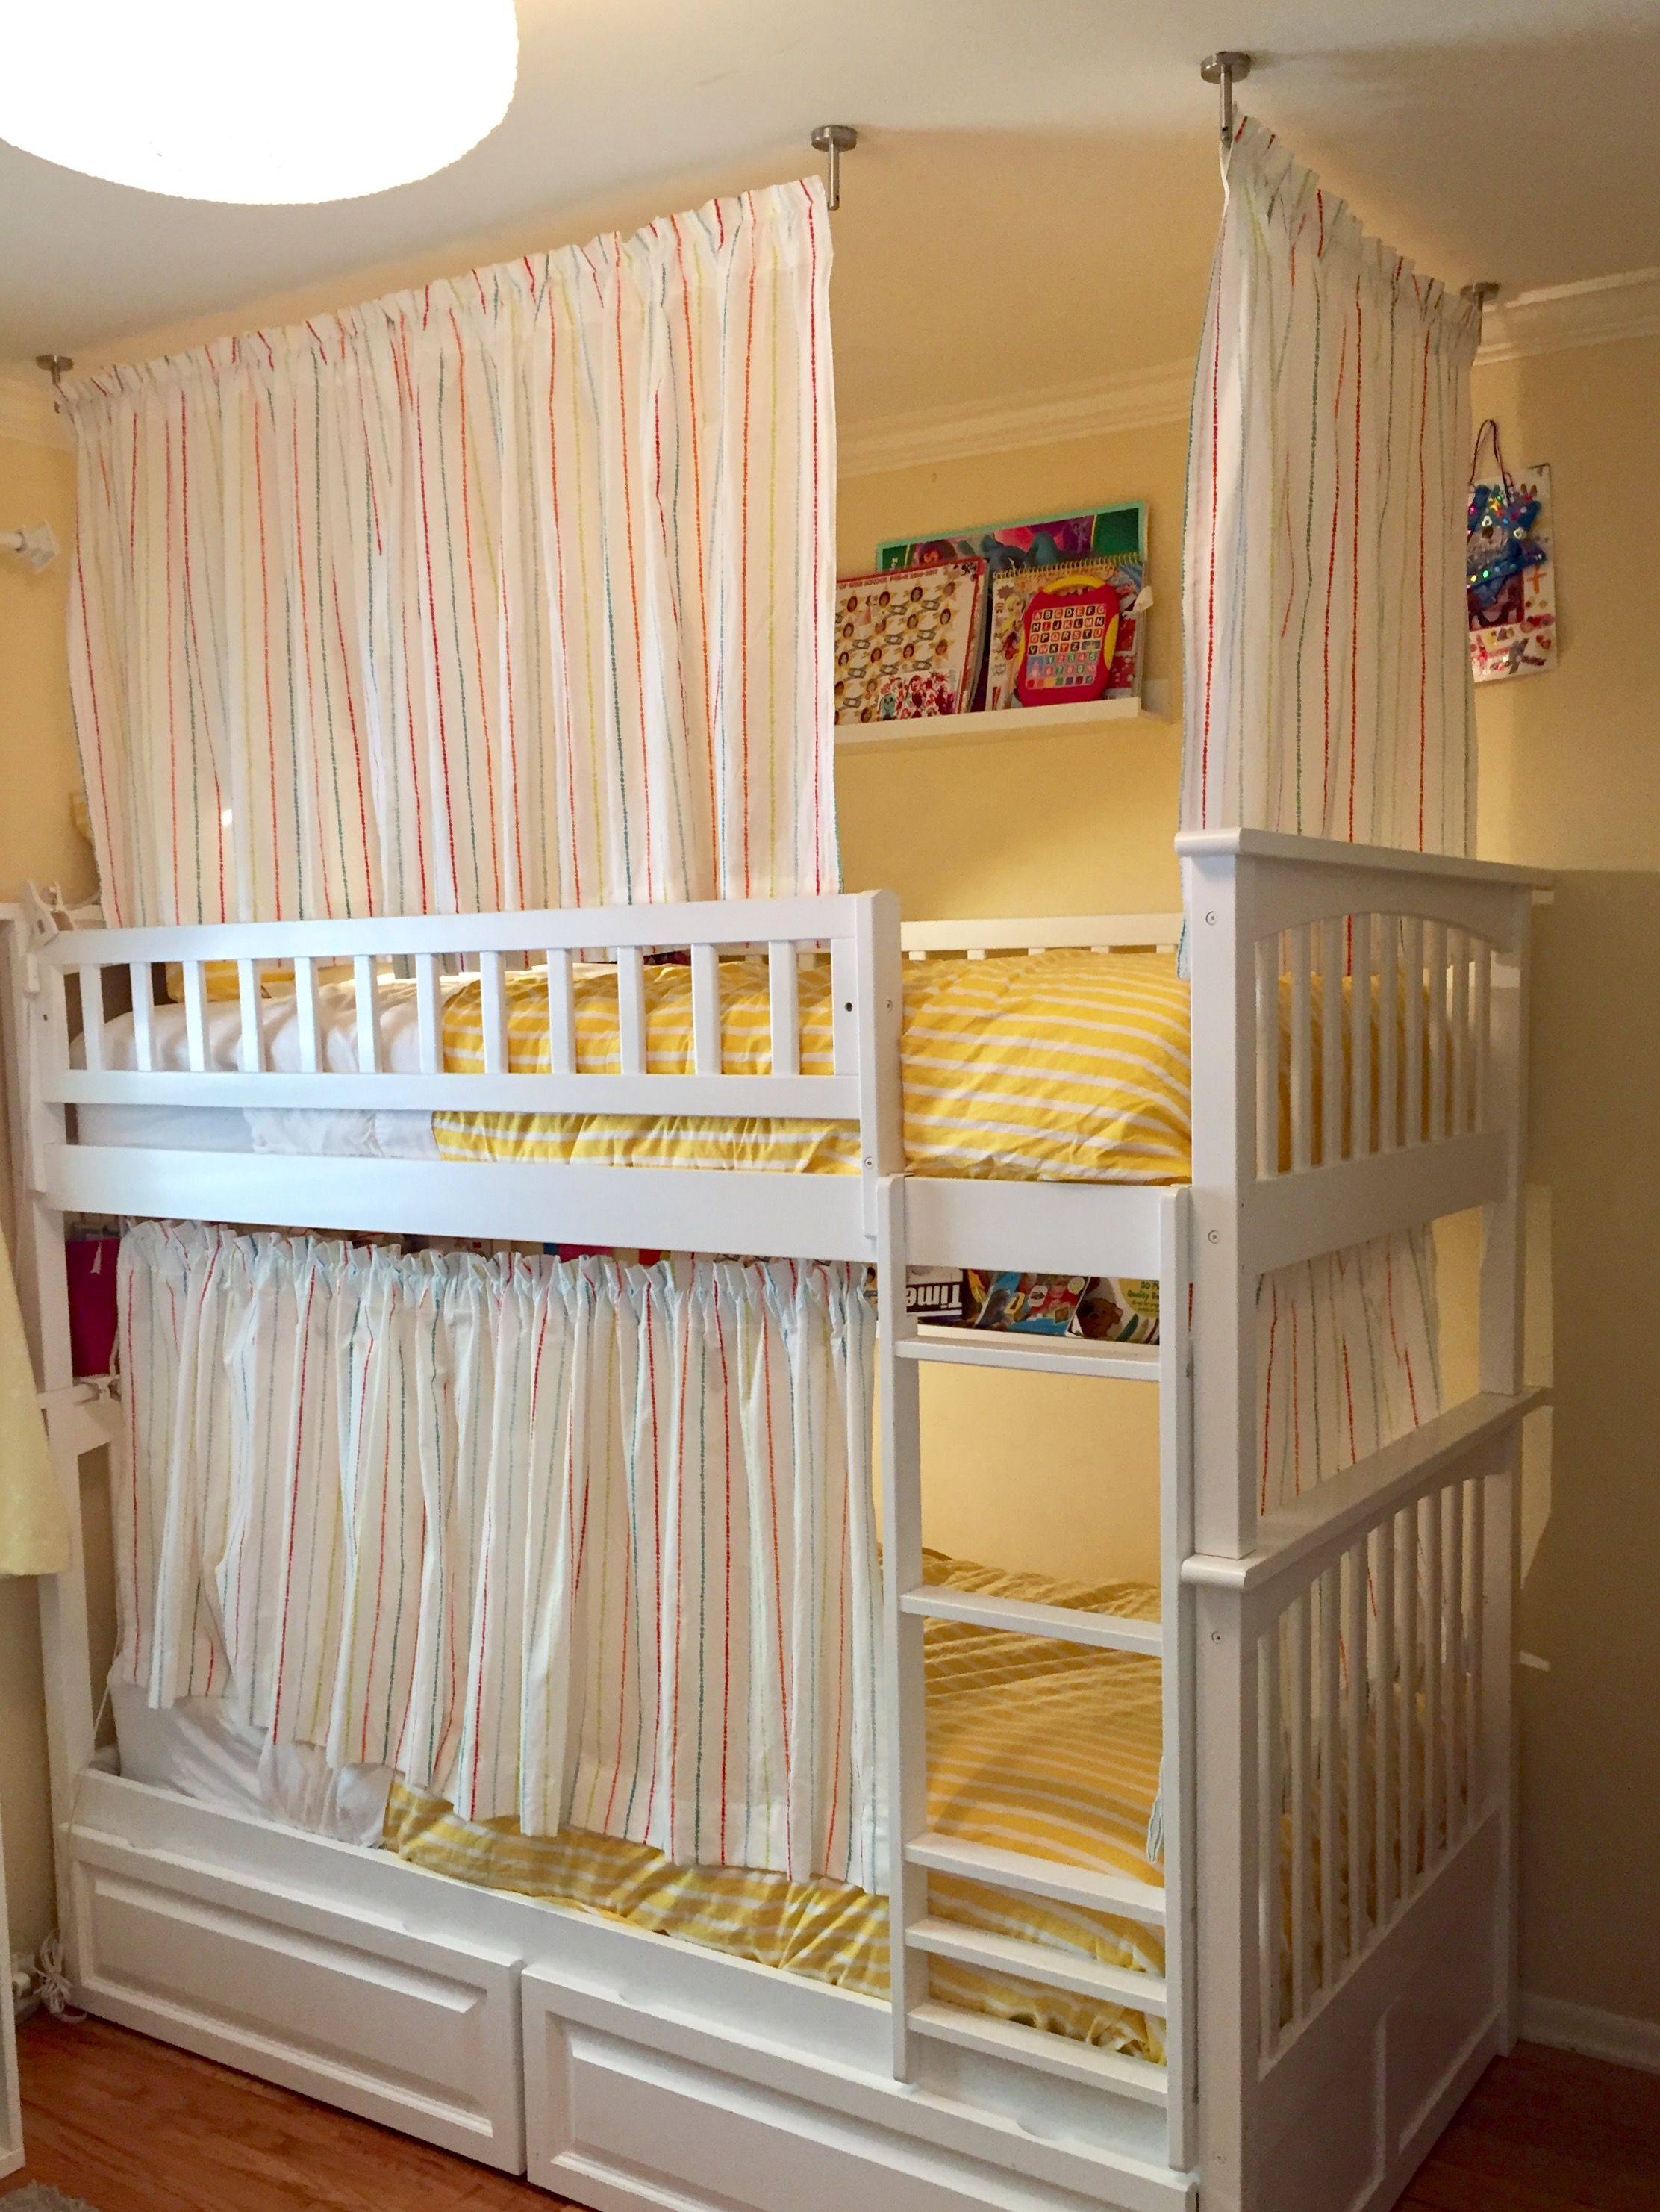 Bunk Bed Curtains Using Ikea Products Dignitet Wire Curtain Rod Set